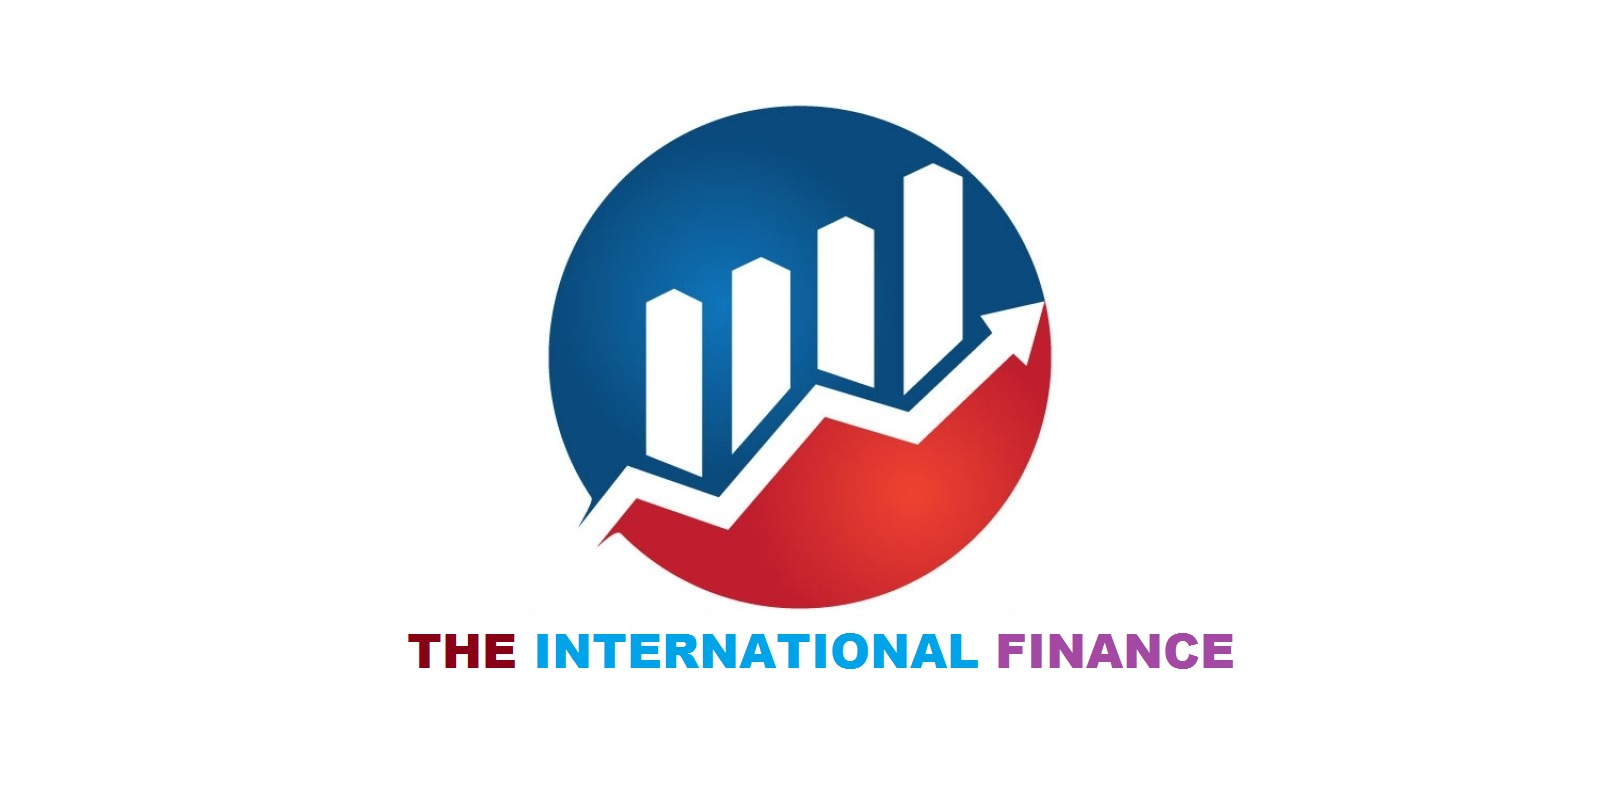 The International Finance